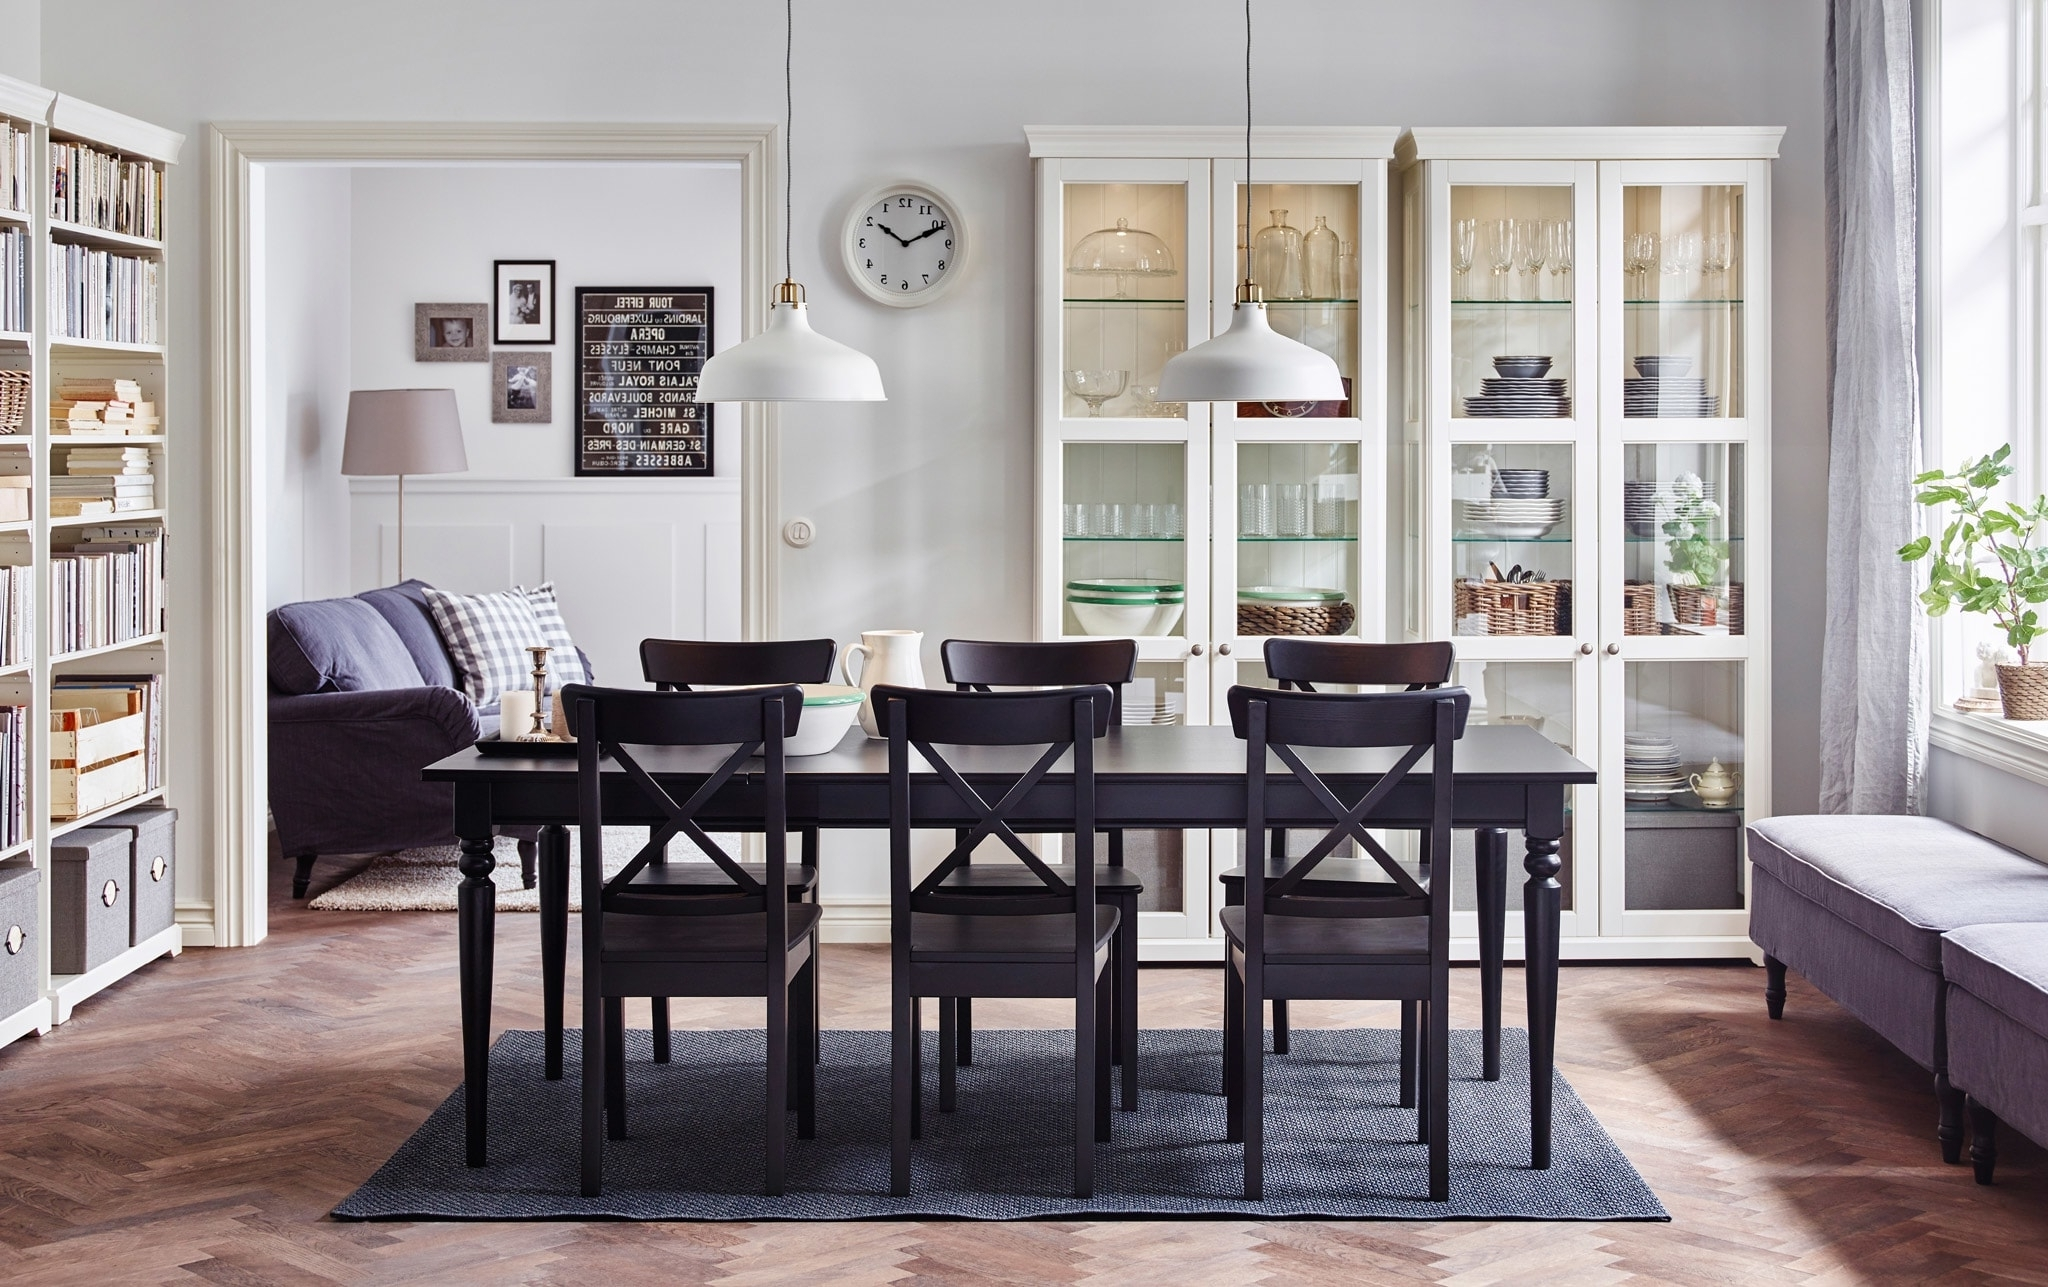 Dining Room Furniture & Ideas (View 7 of 25)